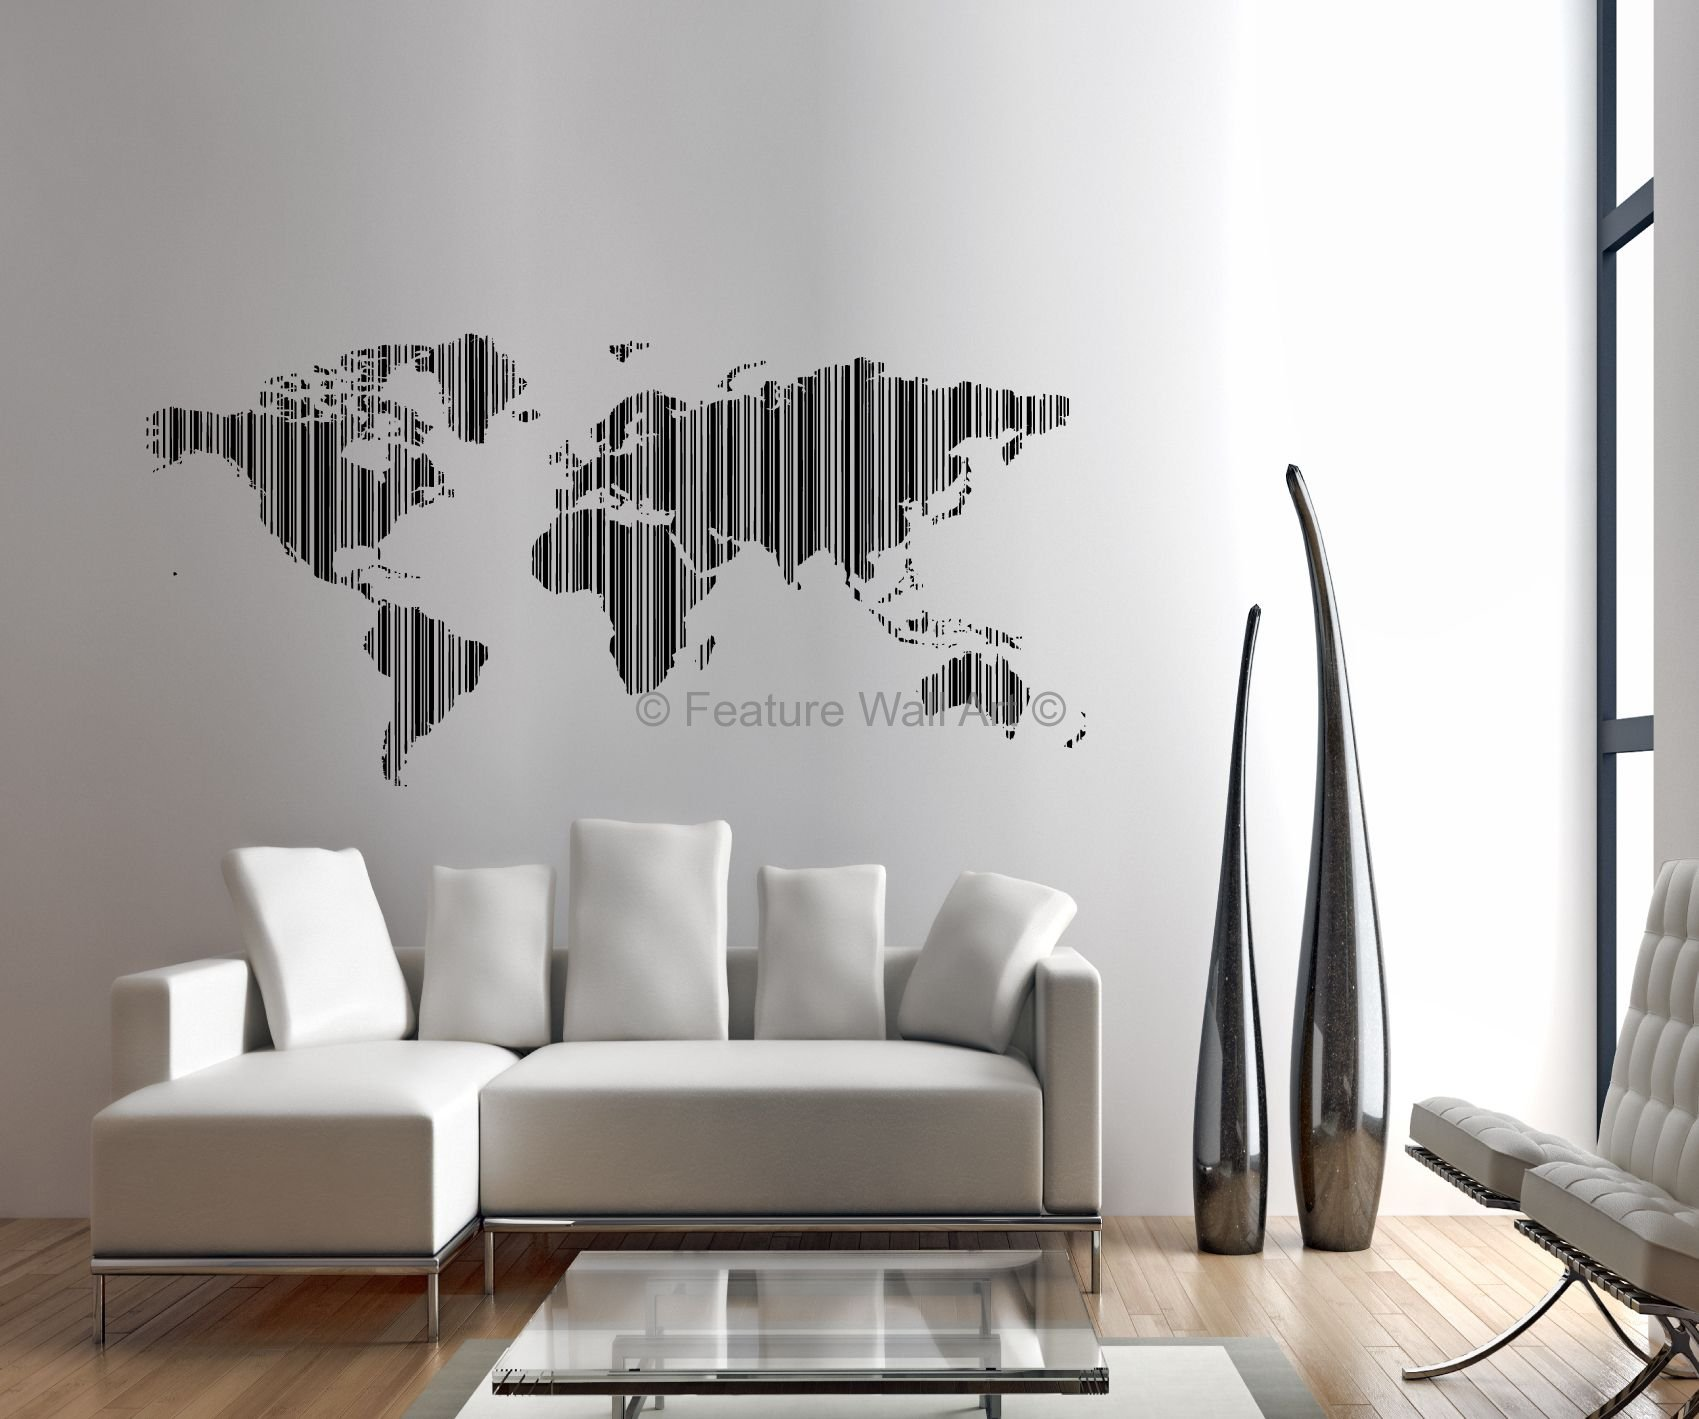 Incorporate Maps Into Your Wall Art Projects